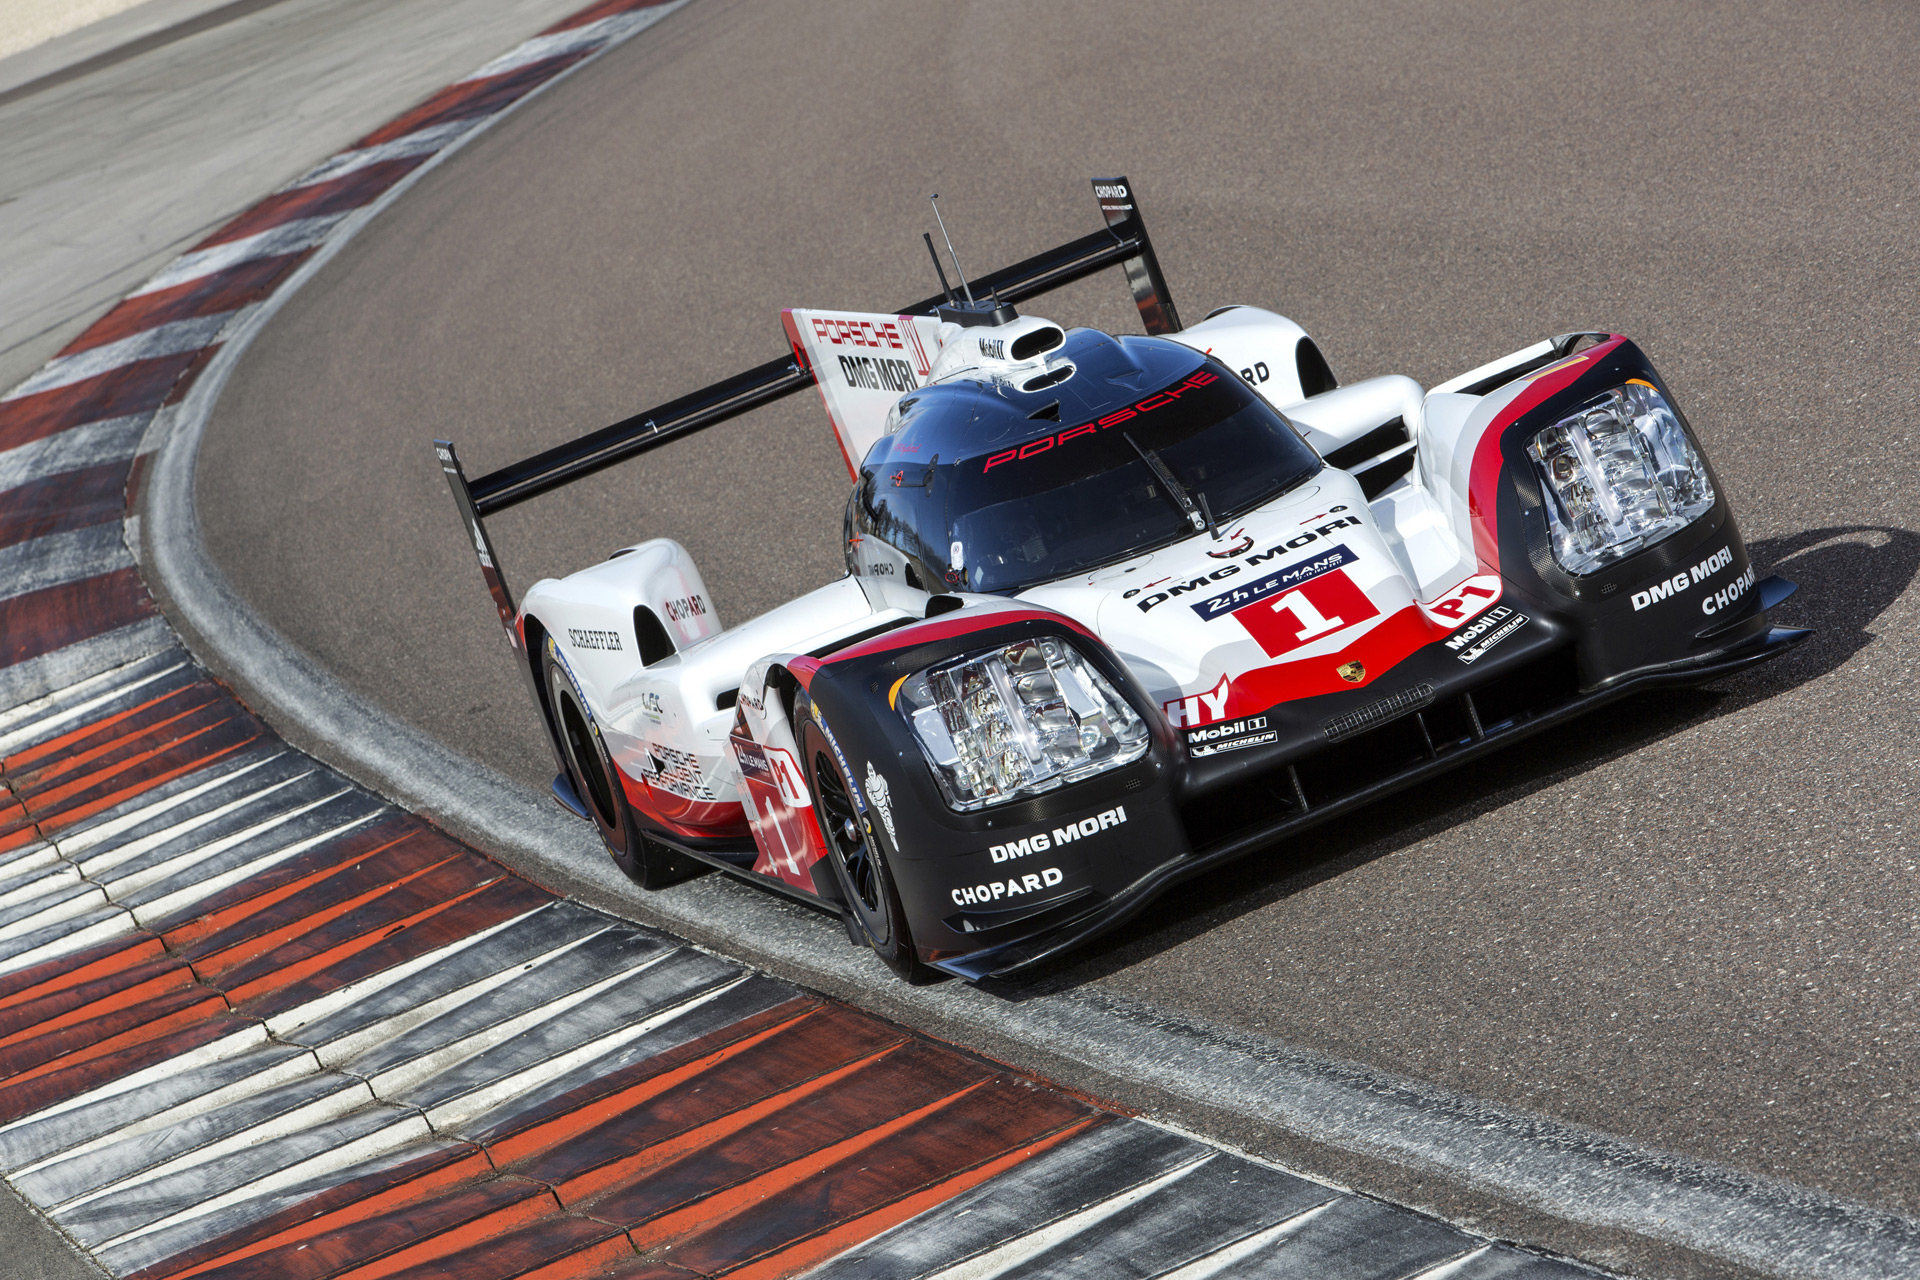 2017 porsche 919 hybrid lmp1 out to defend wec le mans titles. Black Bedroom Furniture Sets. Home Design Ideas